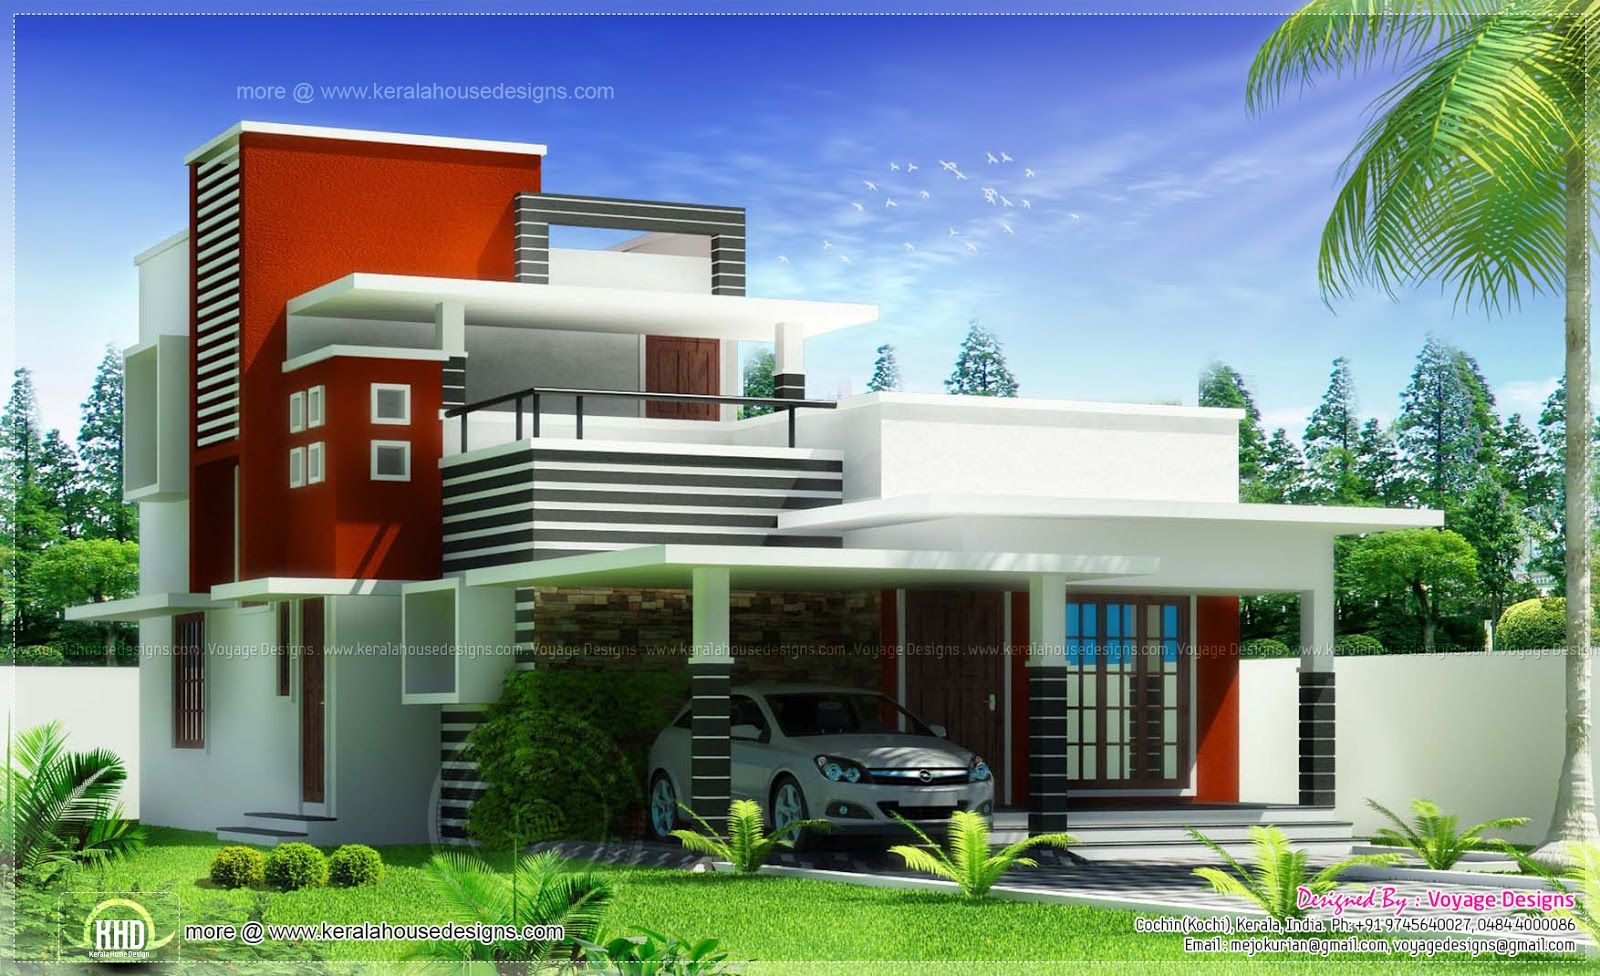 Kerala house designs architecture pinterest kerala for Modern house plans 2015